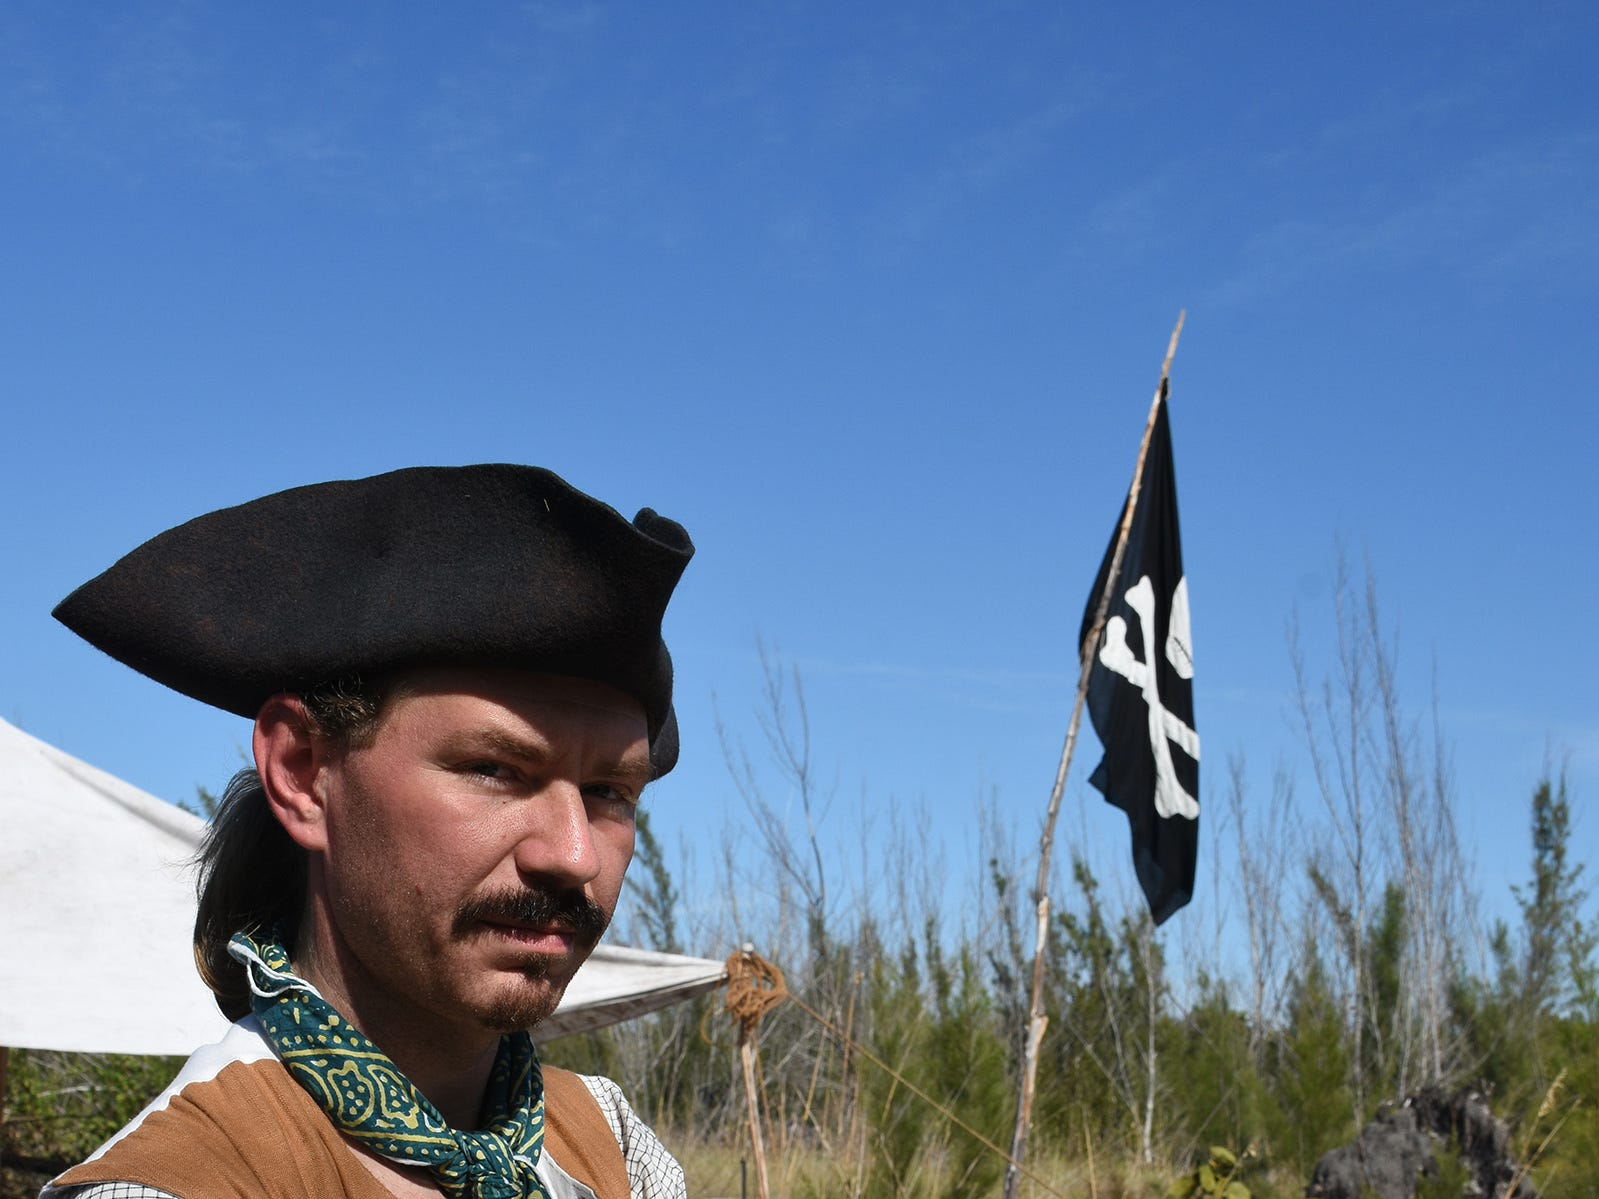 Donald Ridenbaugh, aka Capt. Jack Sawford, relaxes in camp. A group of historical reenactors dedicated to living the life of 18th century swashbucklers set up a pirate camp on Kice Island, across Caxambas Pass from Cape Marco, over the weekend.